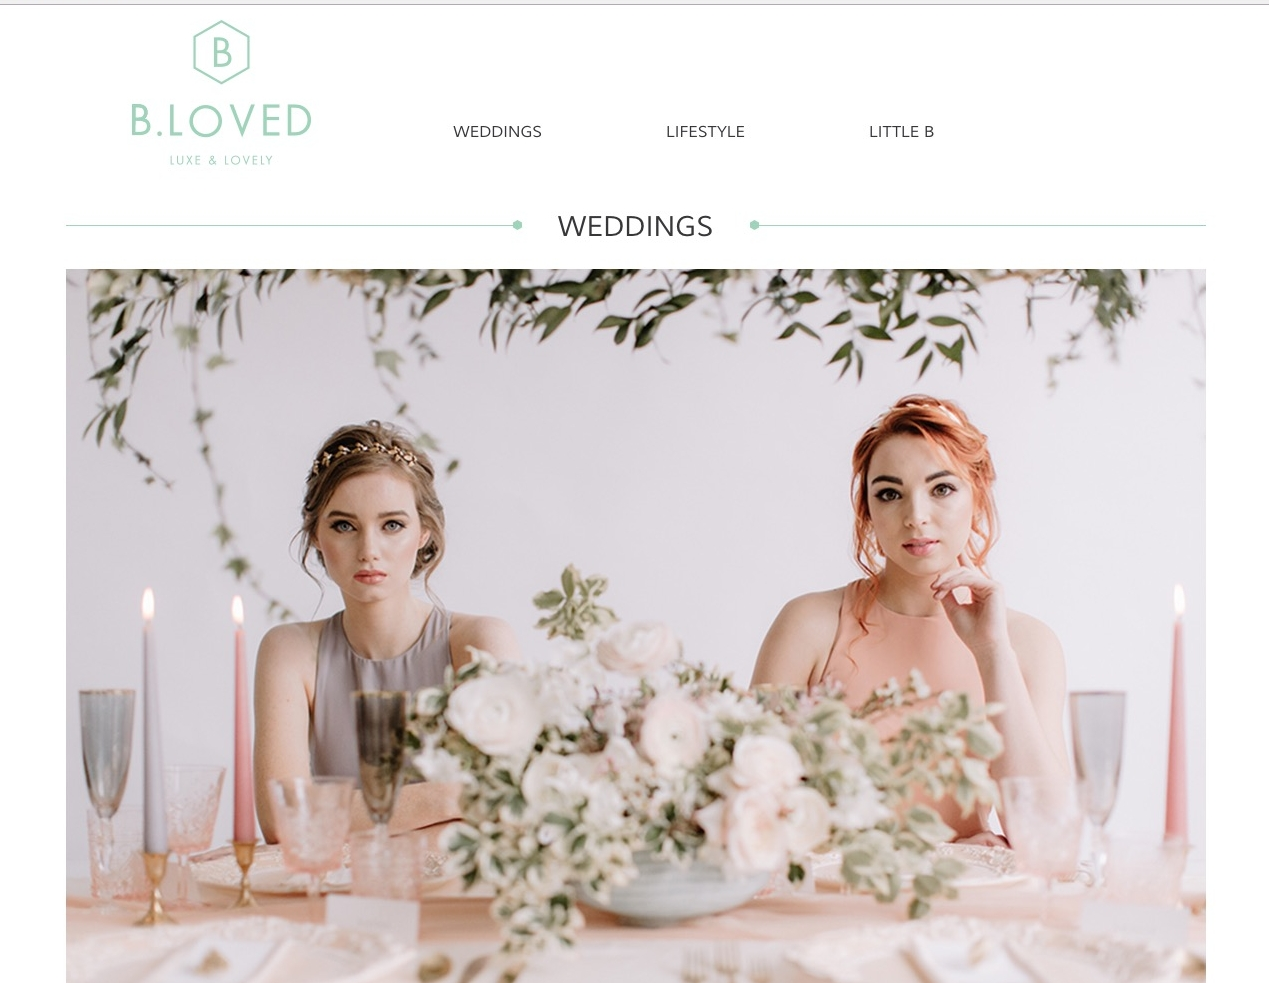 Feature on Bloved Wedding Blog